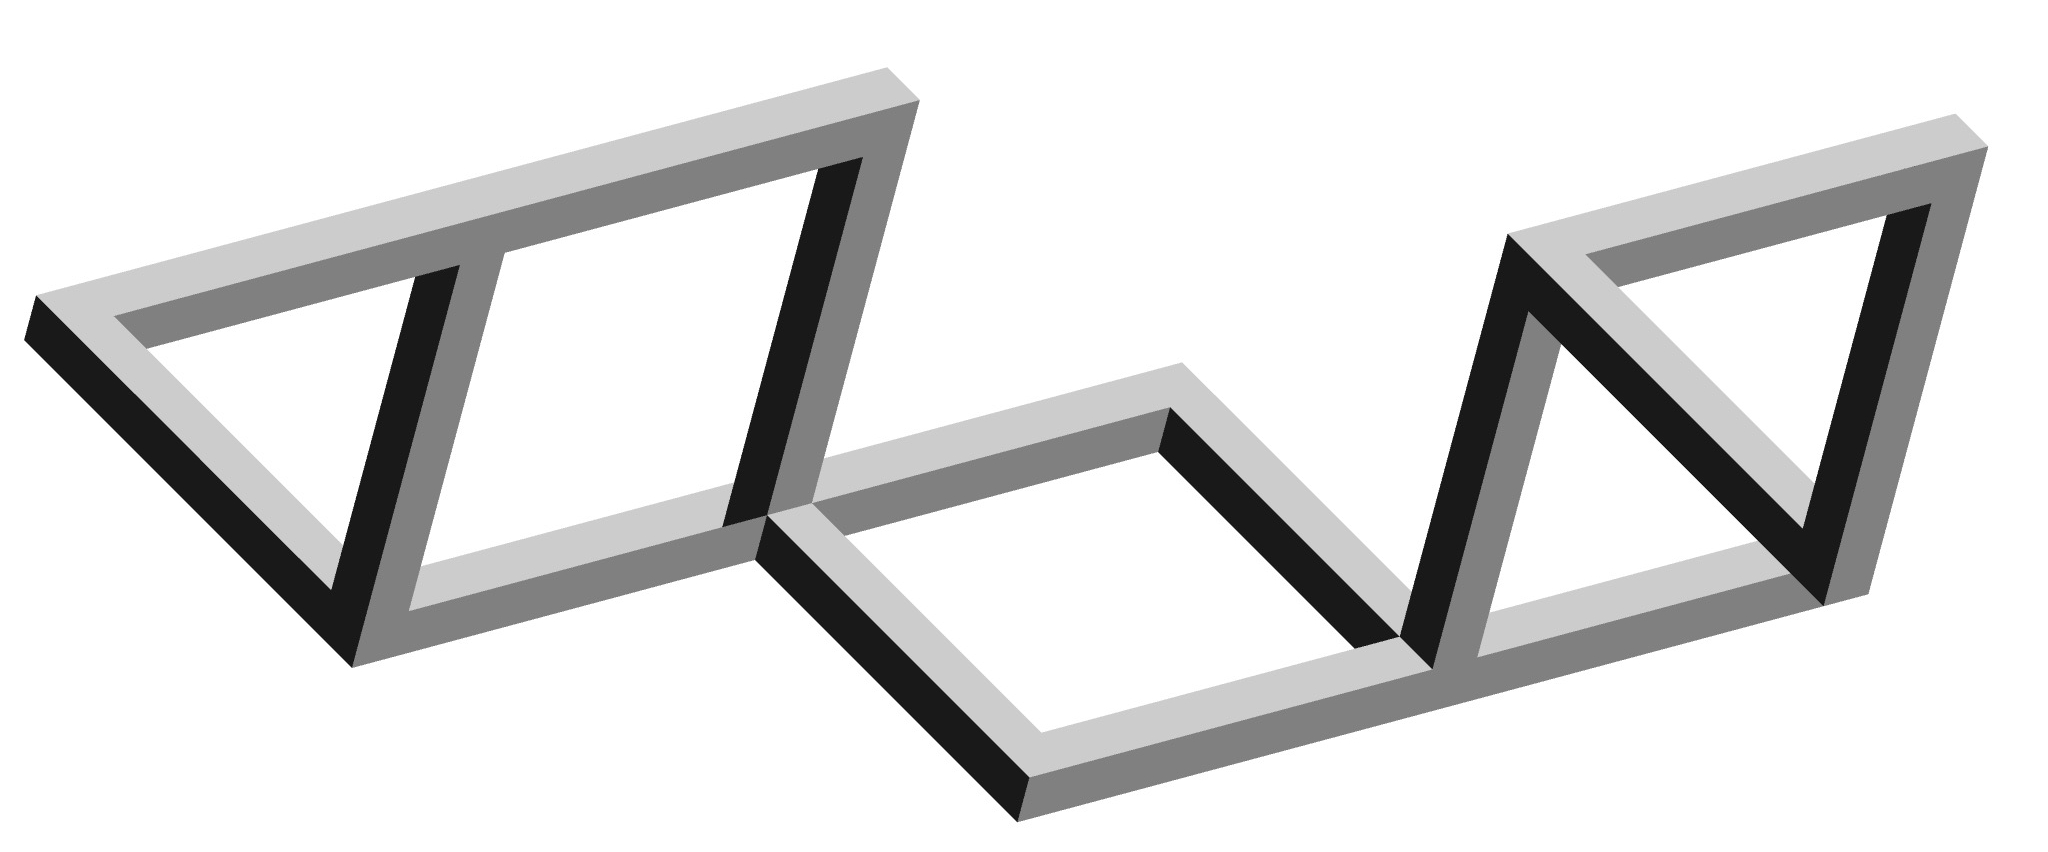 Impossible object created in  Isometric